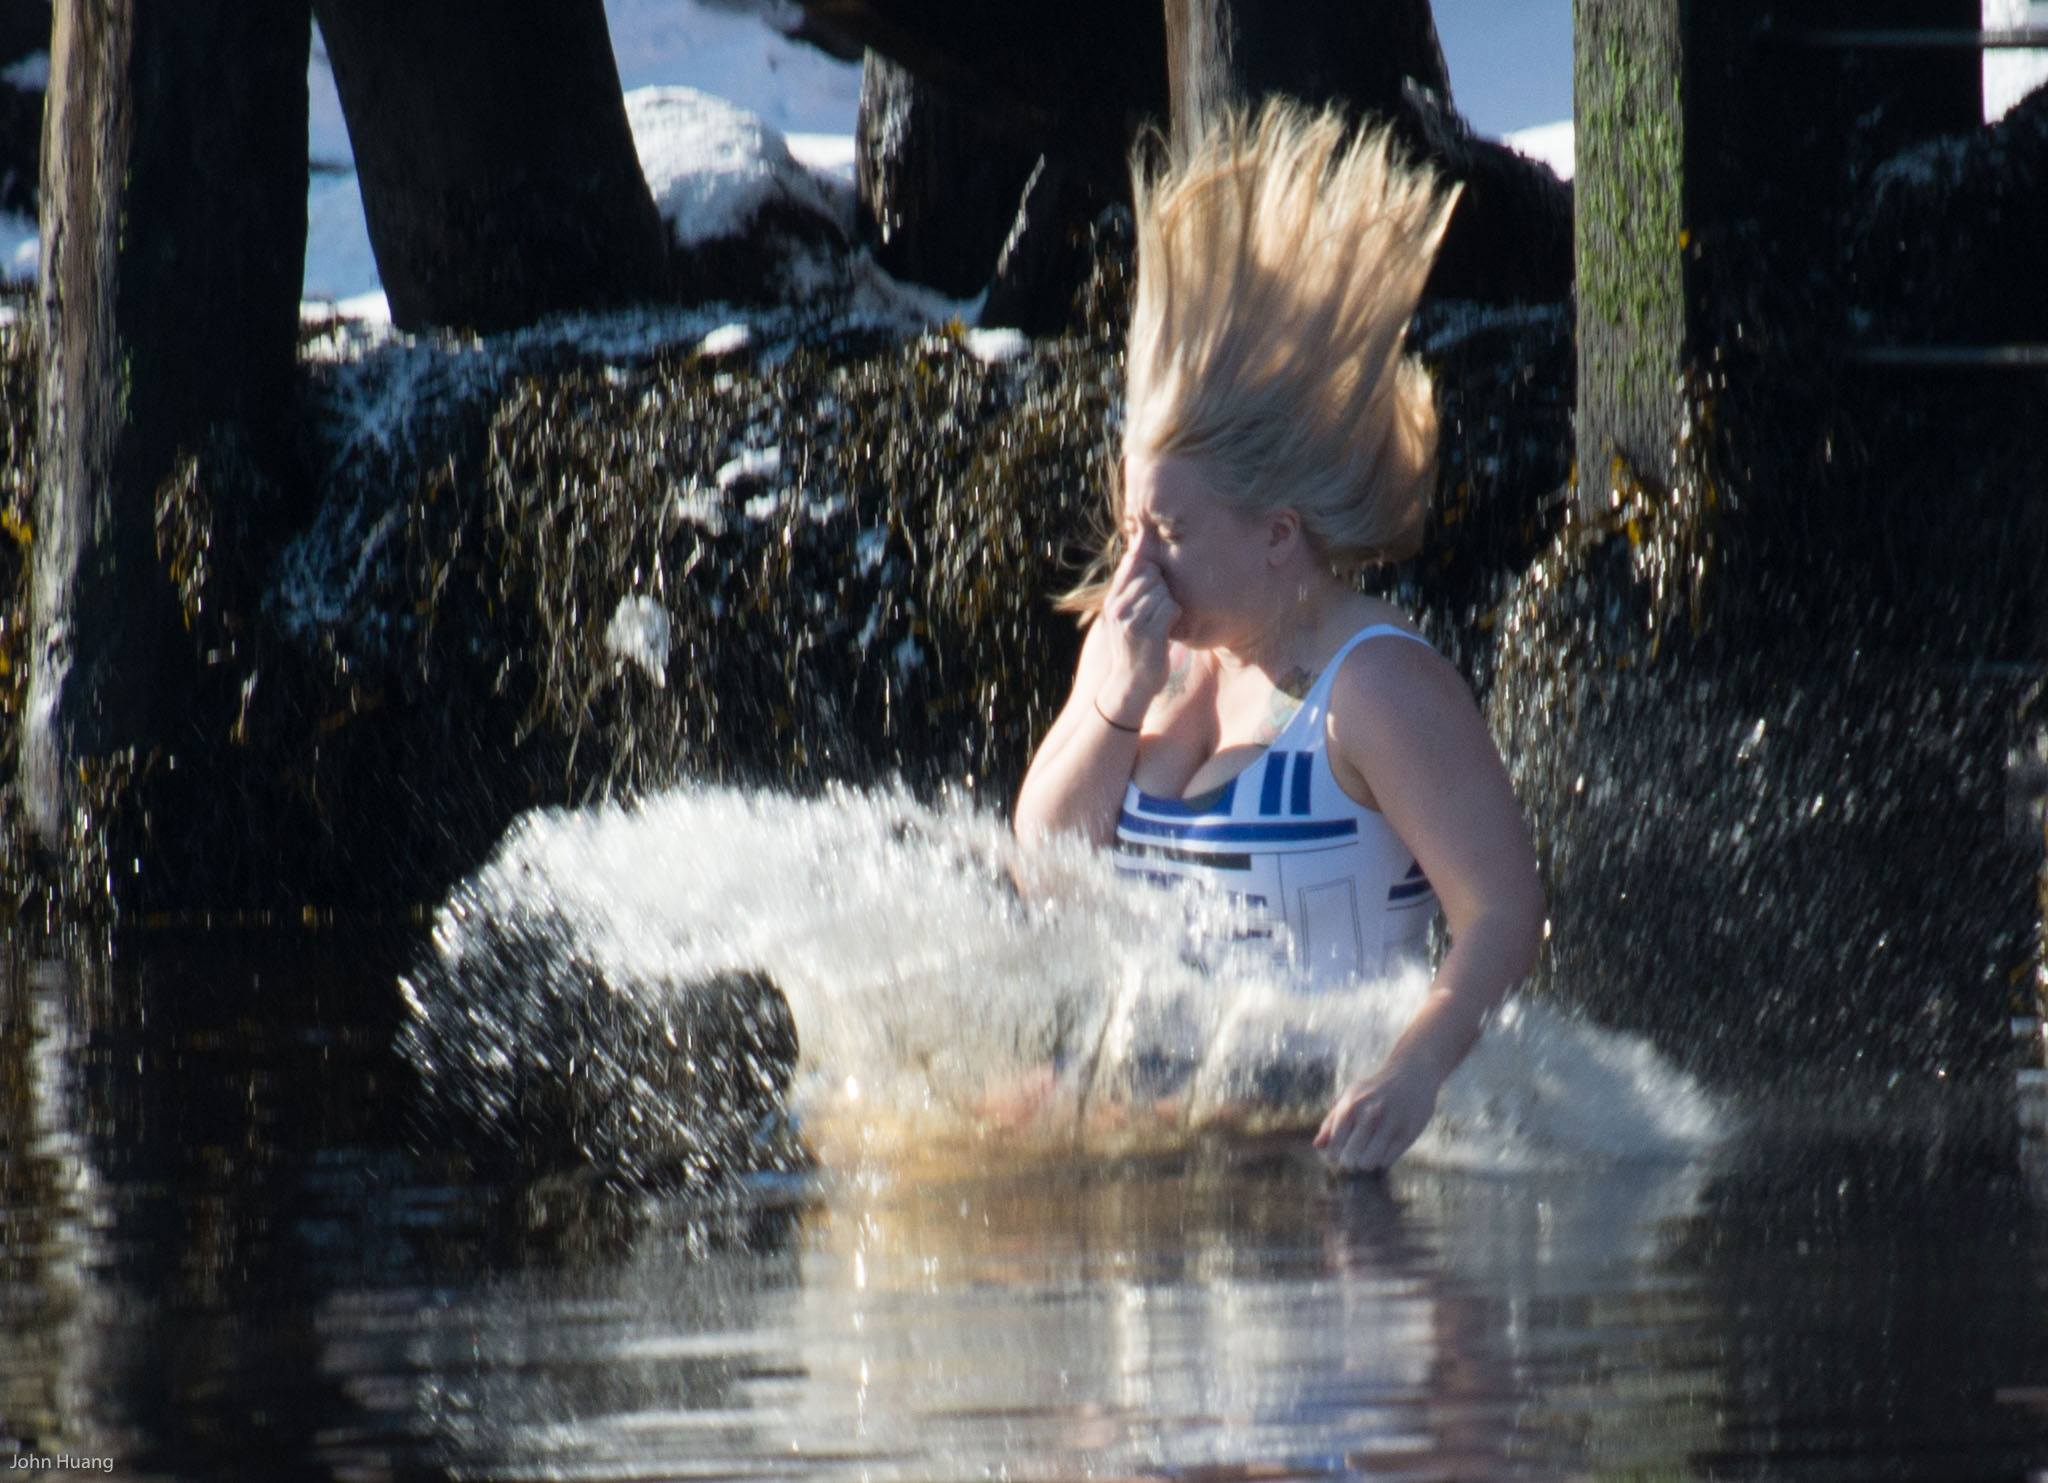 PAVIA's Christina Baker enters the 5 degree water for charity!